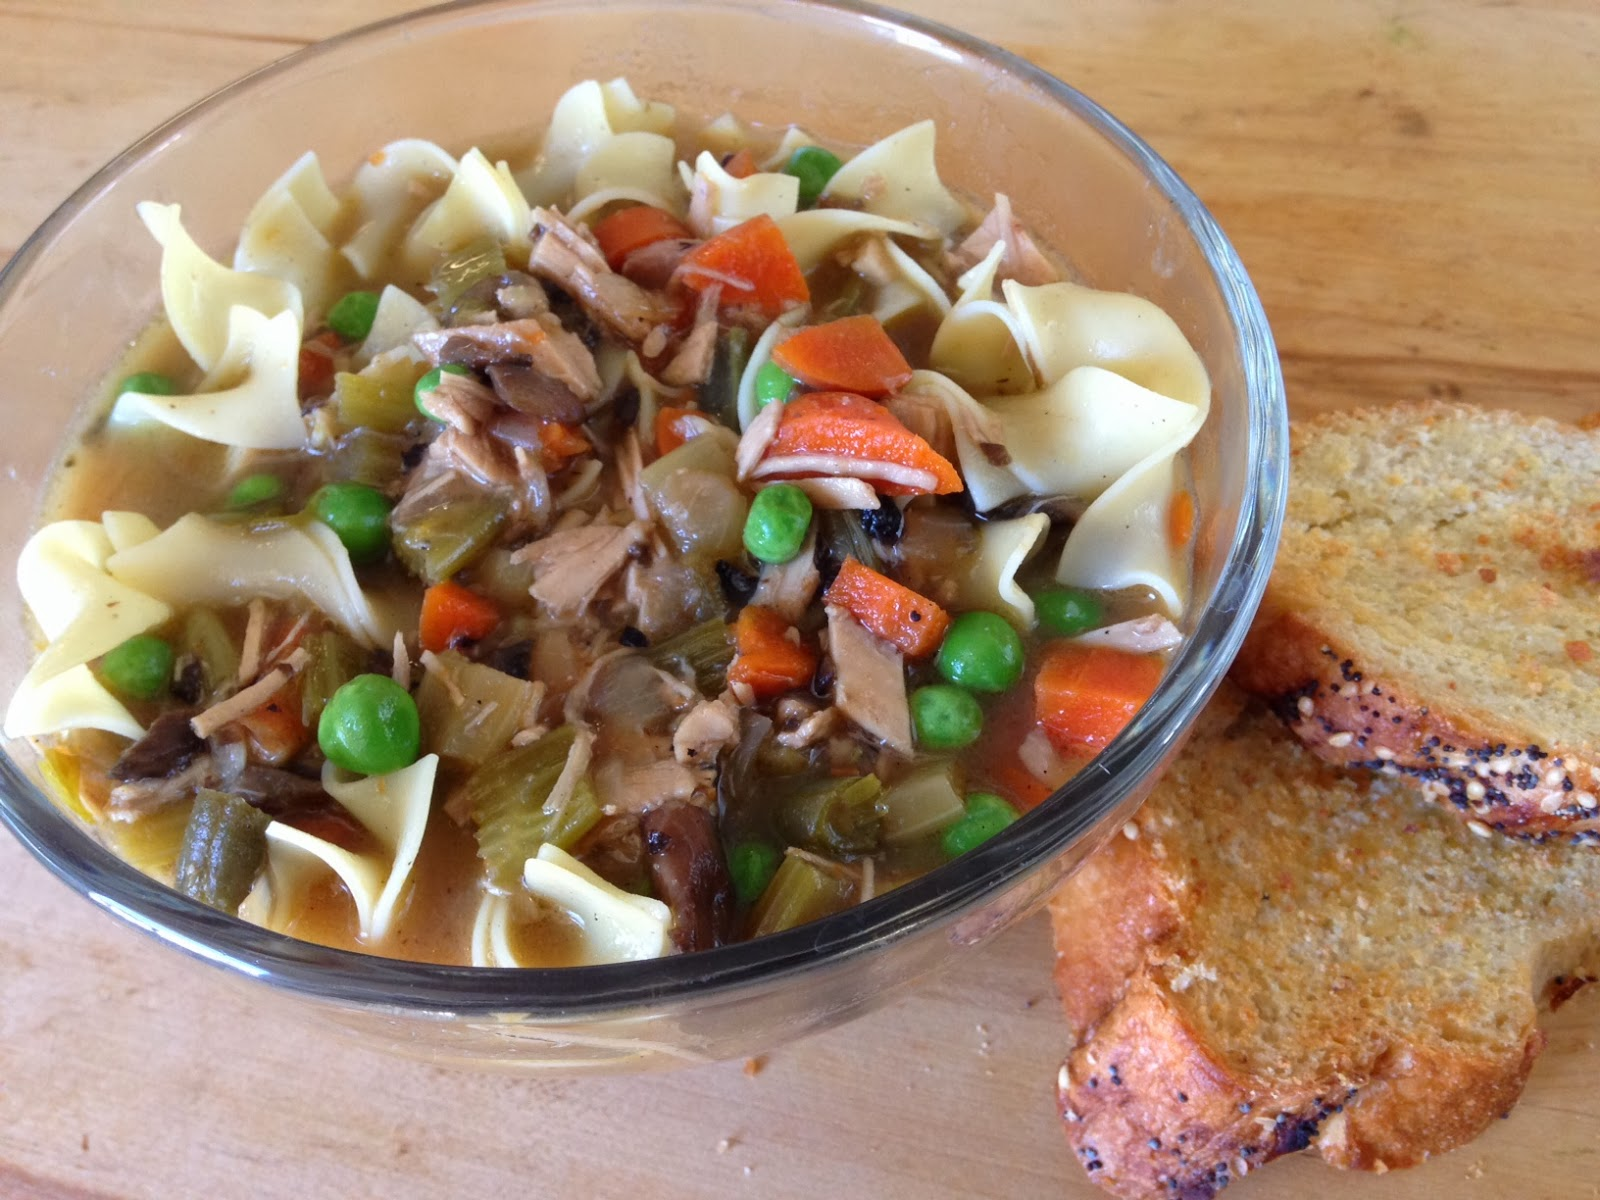 Cheftainment: Roasted Turkey Noodle Soup